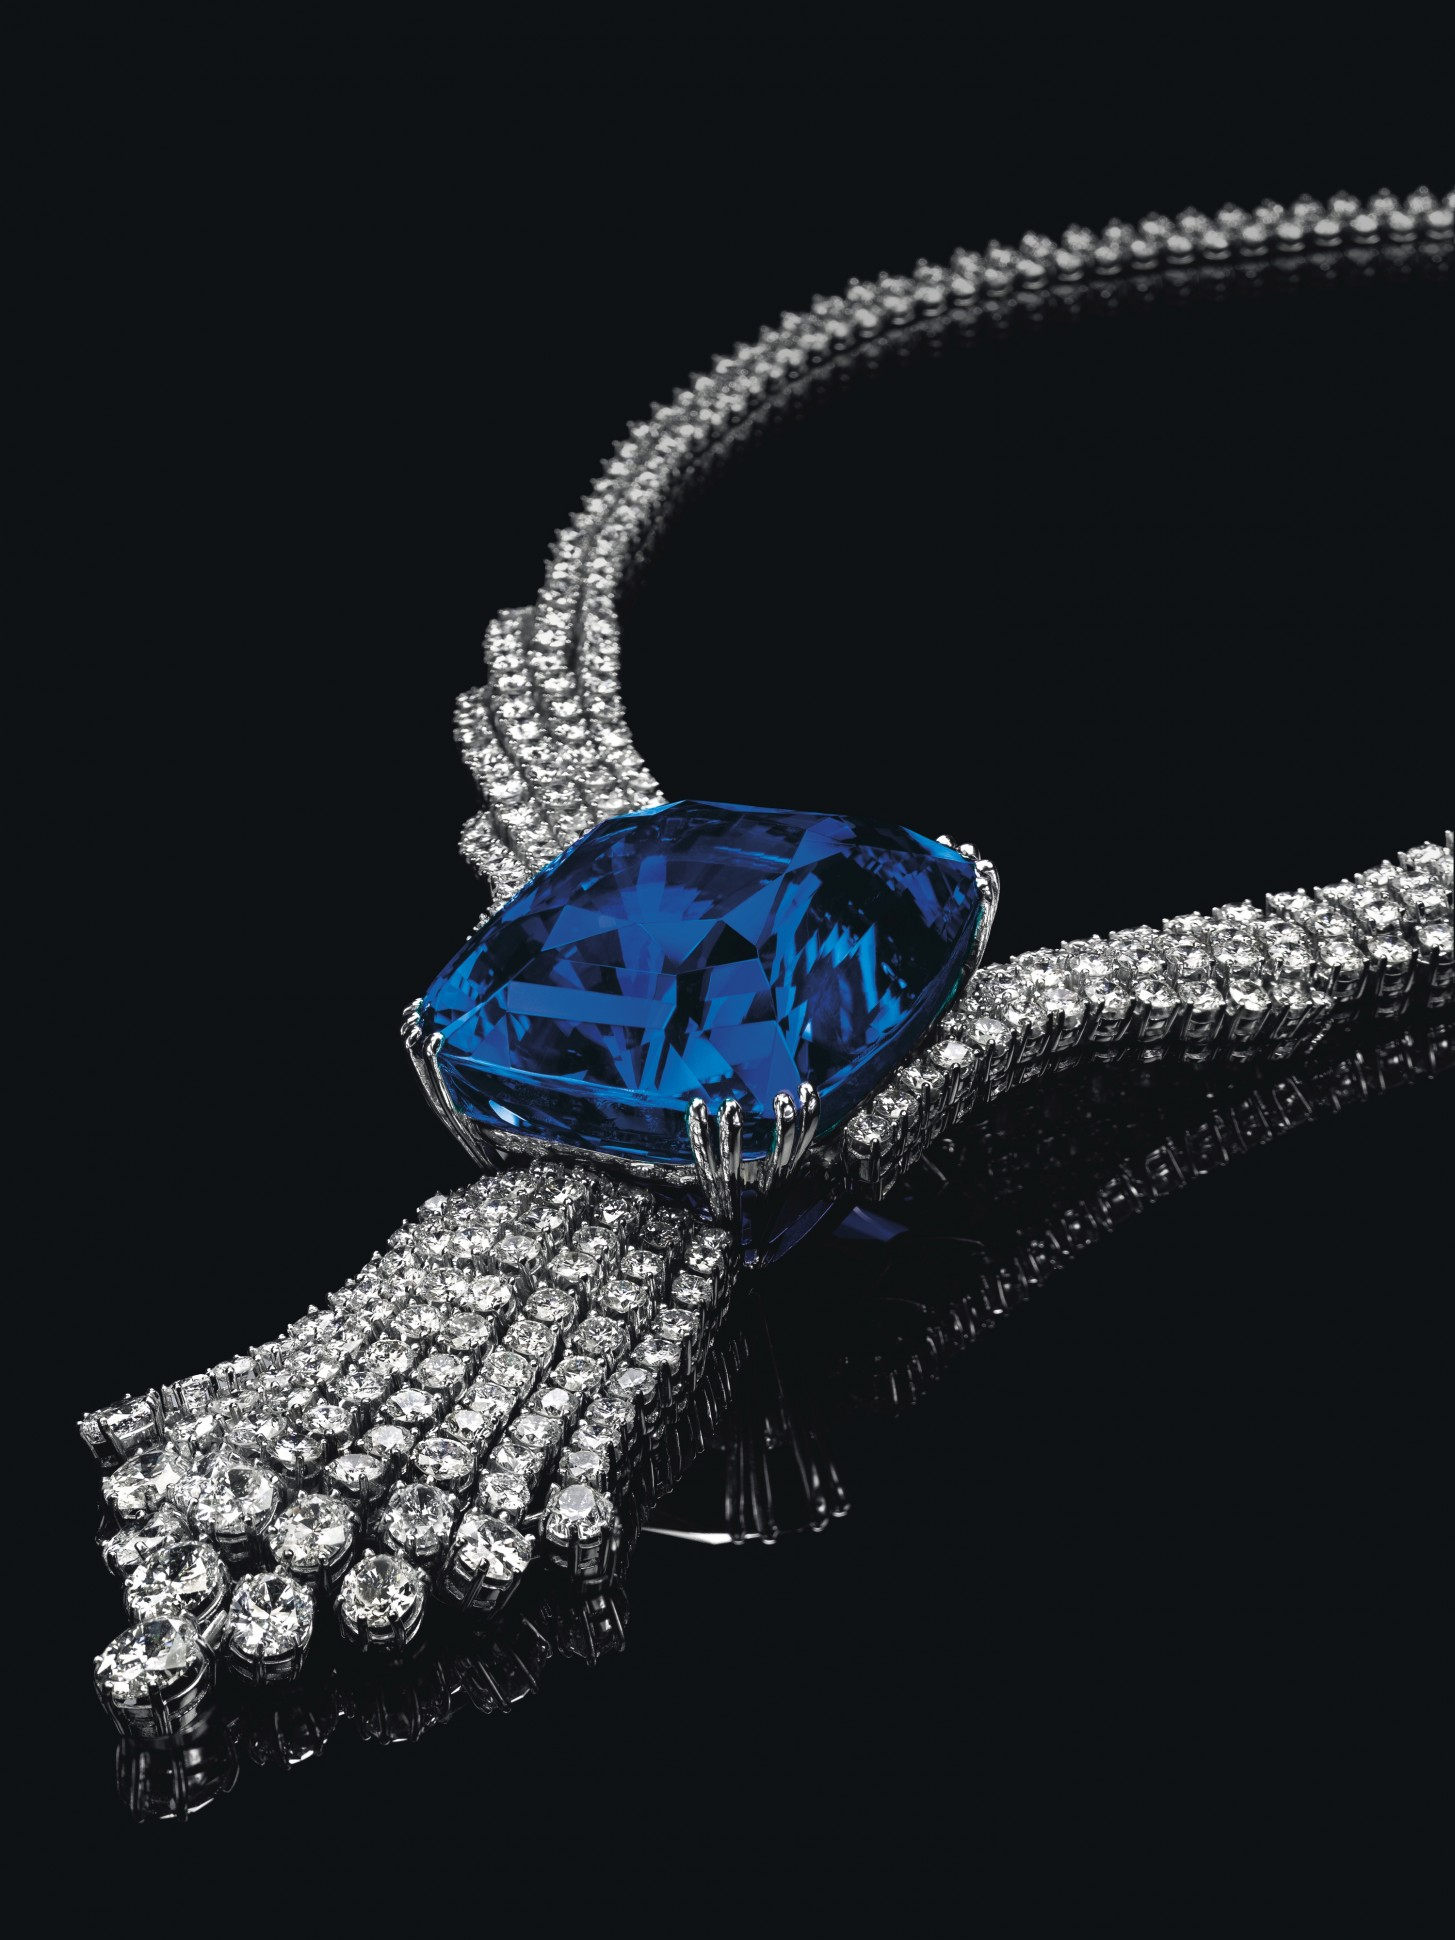 Top 10 Most Expensive Diamond Rings & Necklaces in the World |Worlds Most Expensive Diamond Necklace